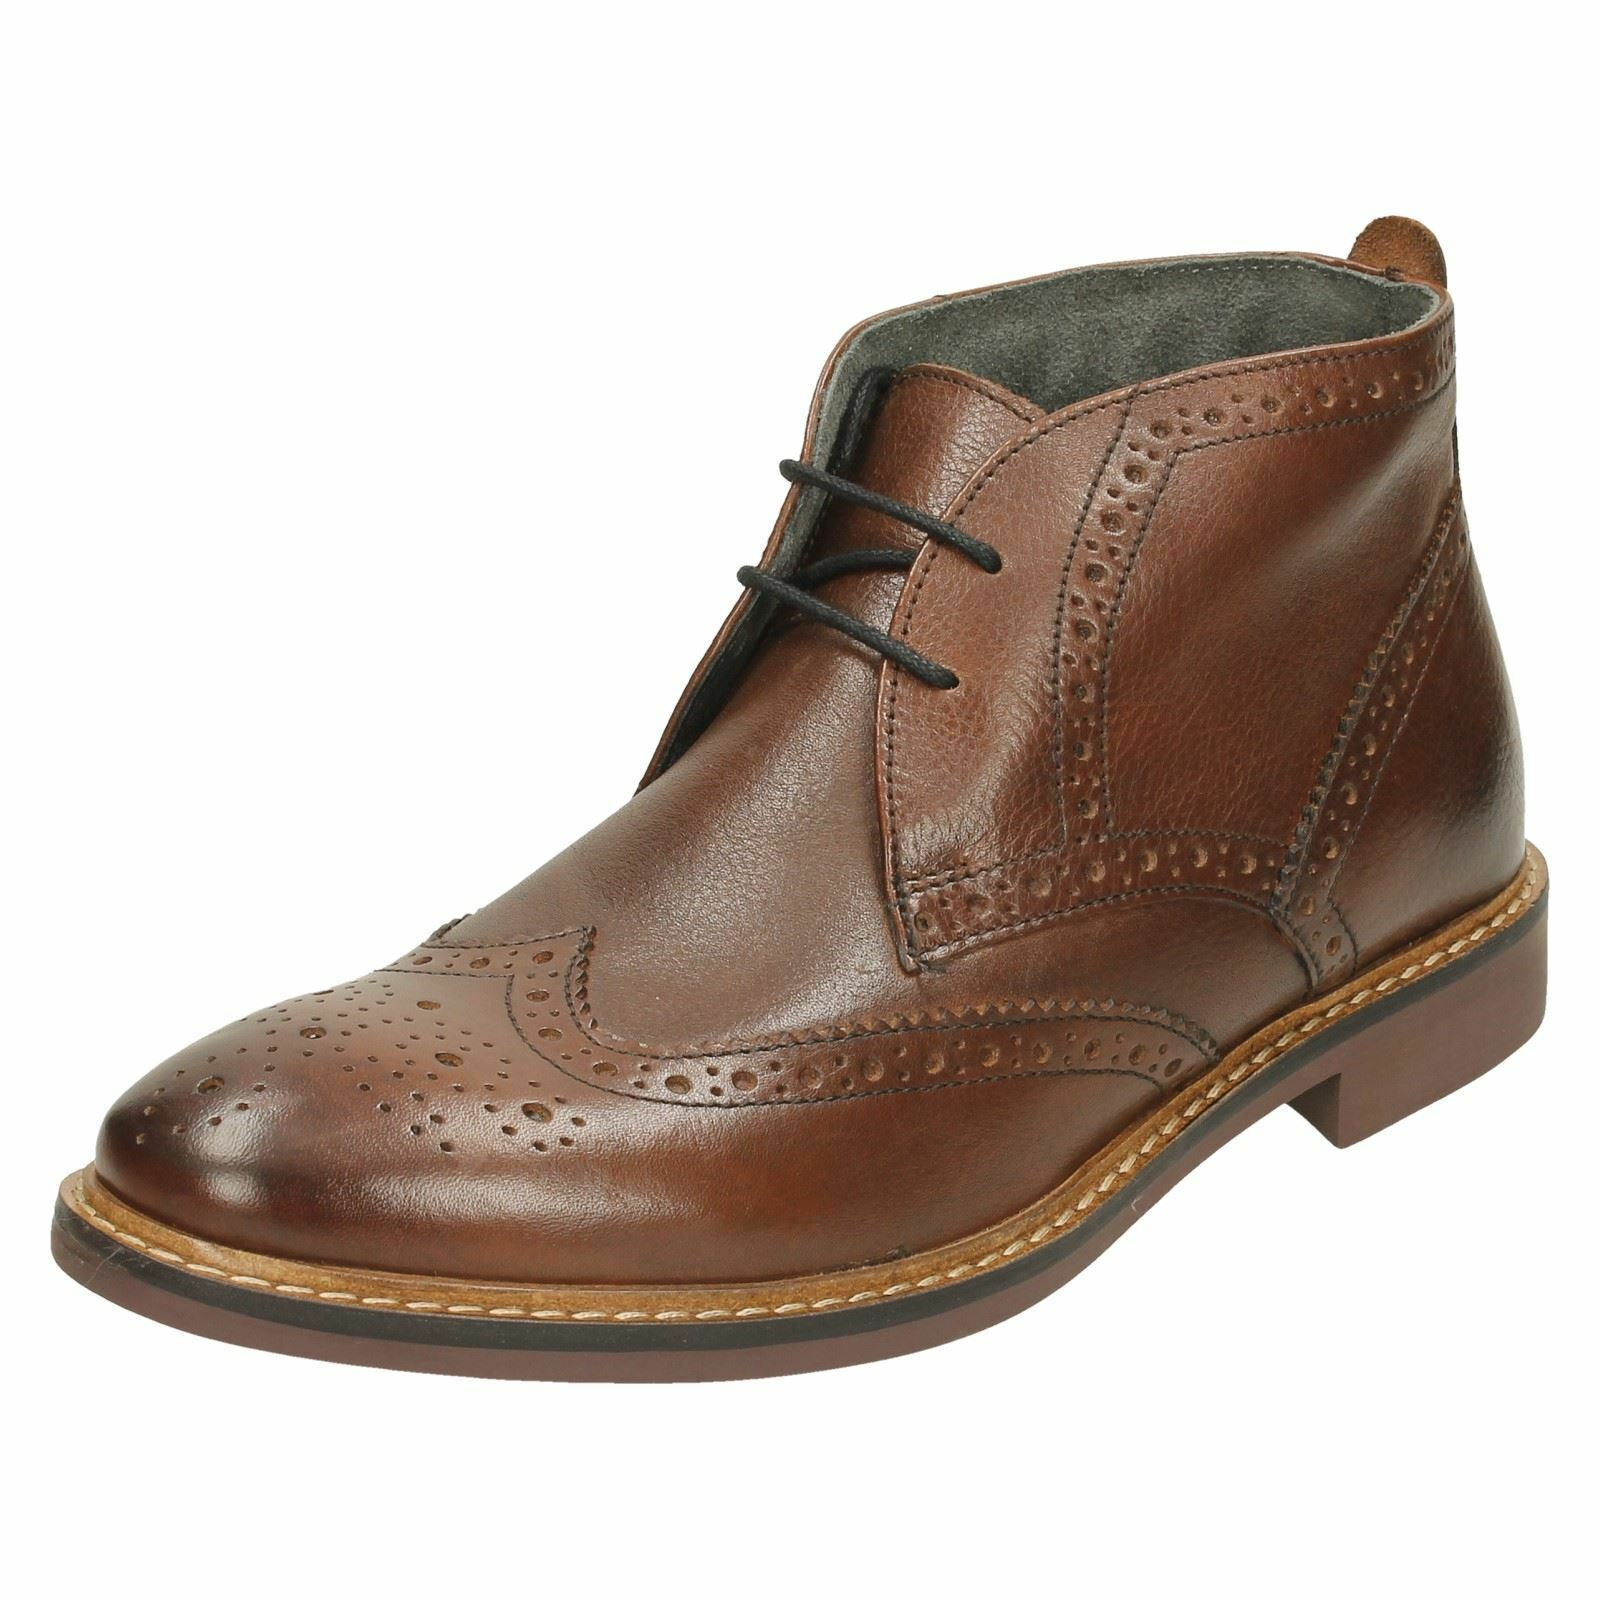 Uomo Stiefel Trick Lace Up Ankle Stiefel Uomo By Base London Retail Price a68484